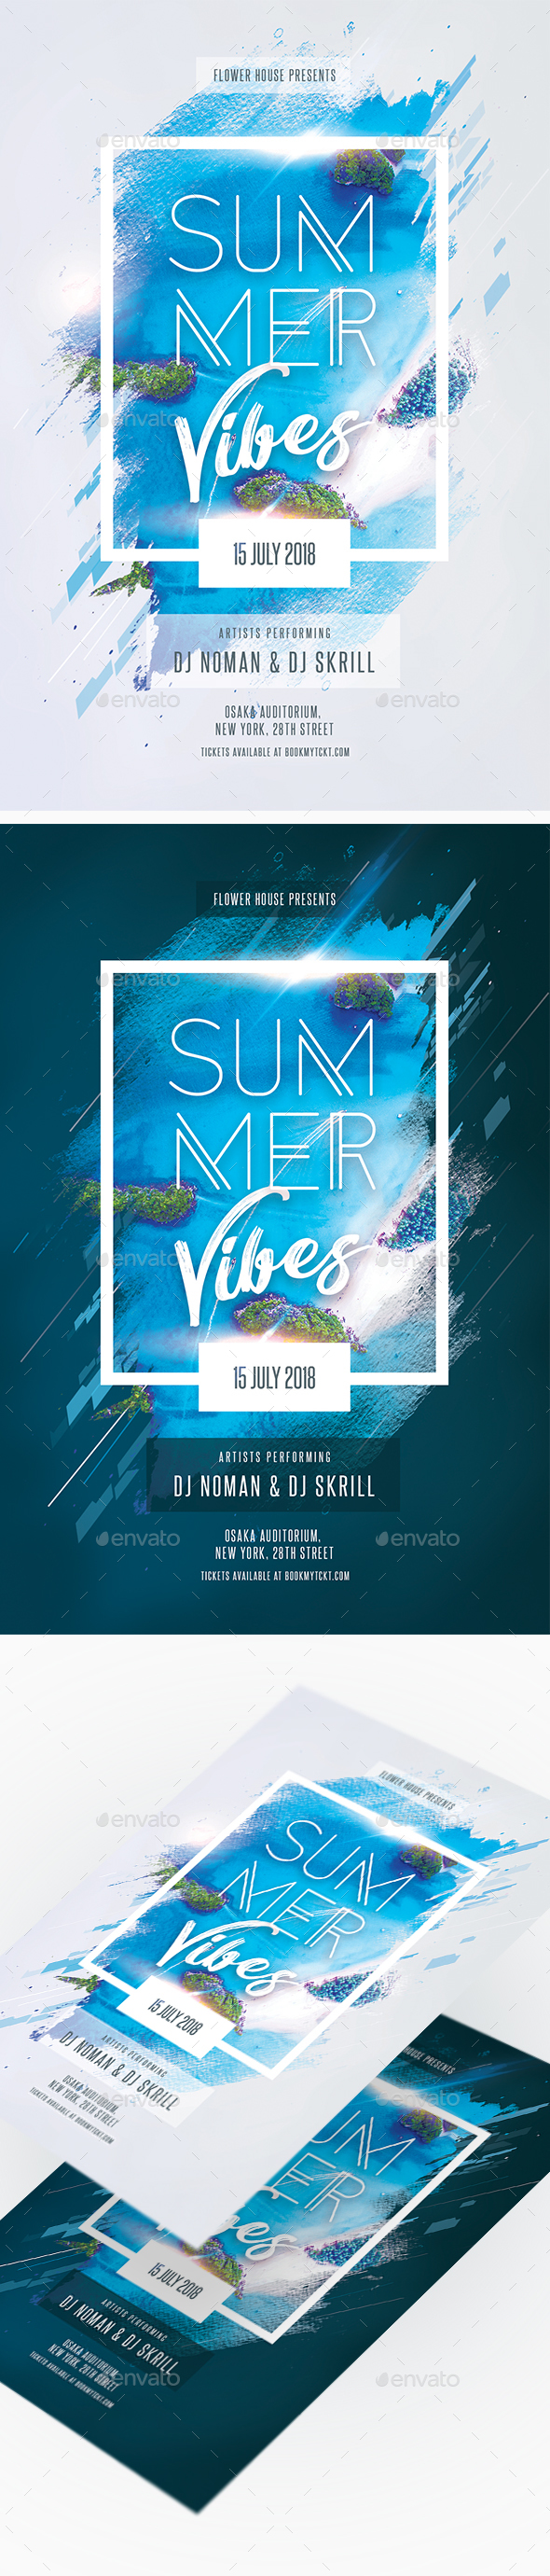 Summer Vibes Creative Party Flyer - Clubs & Parties Events